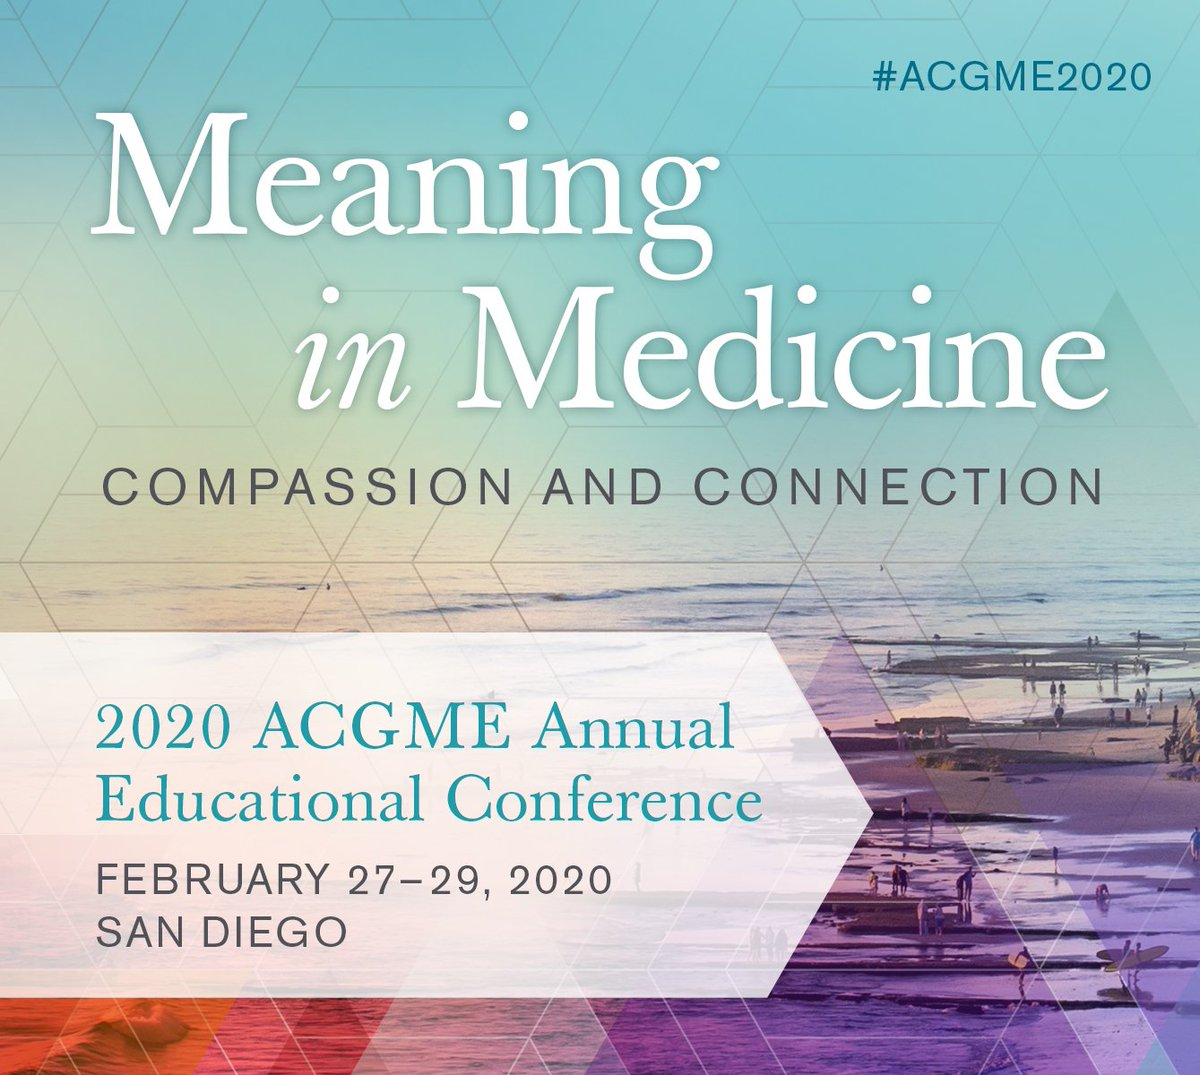 ACGME 2020 Meaning in Medicine Educational Conference in San Diego